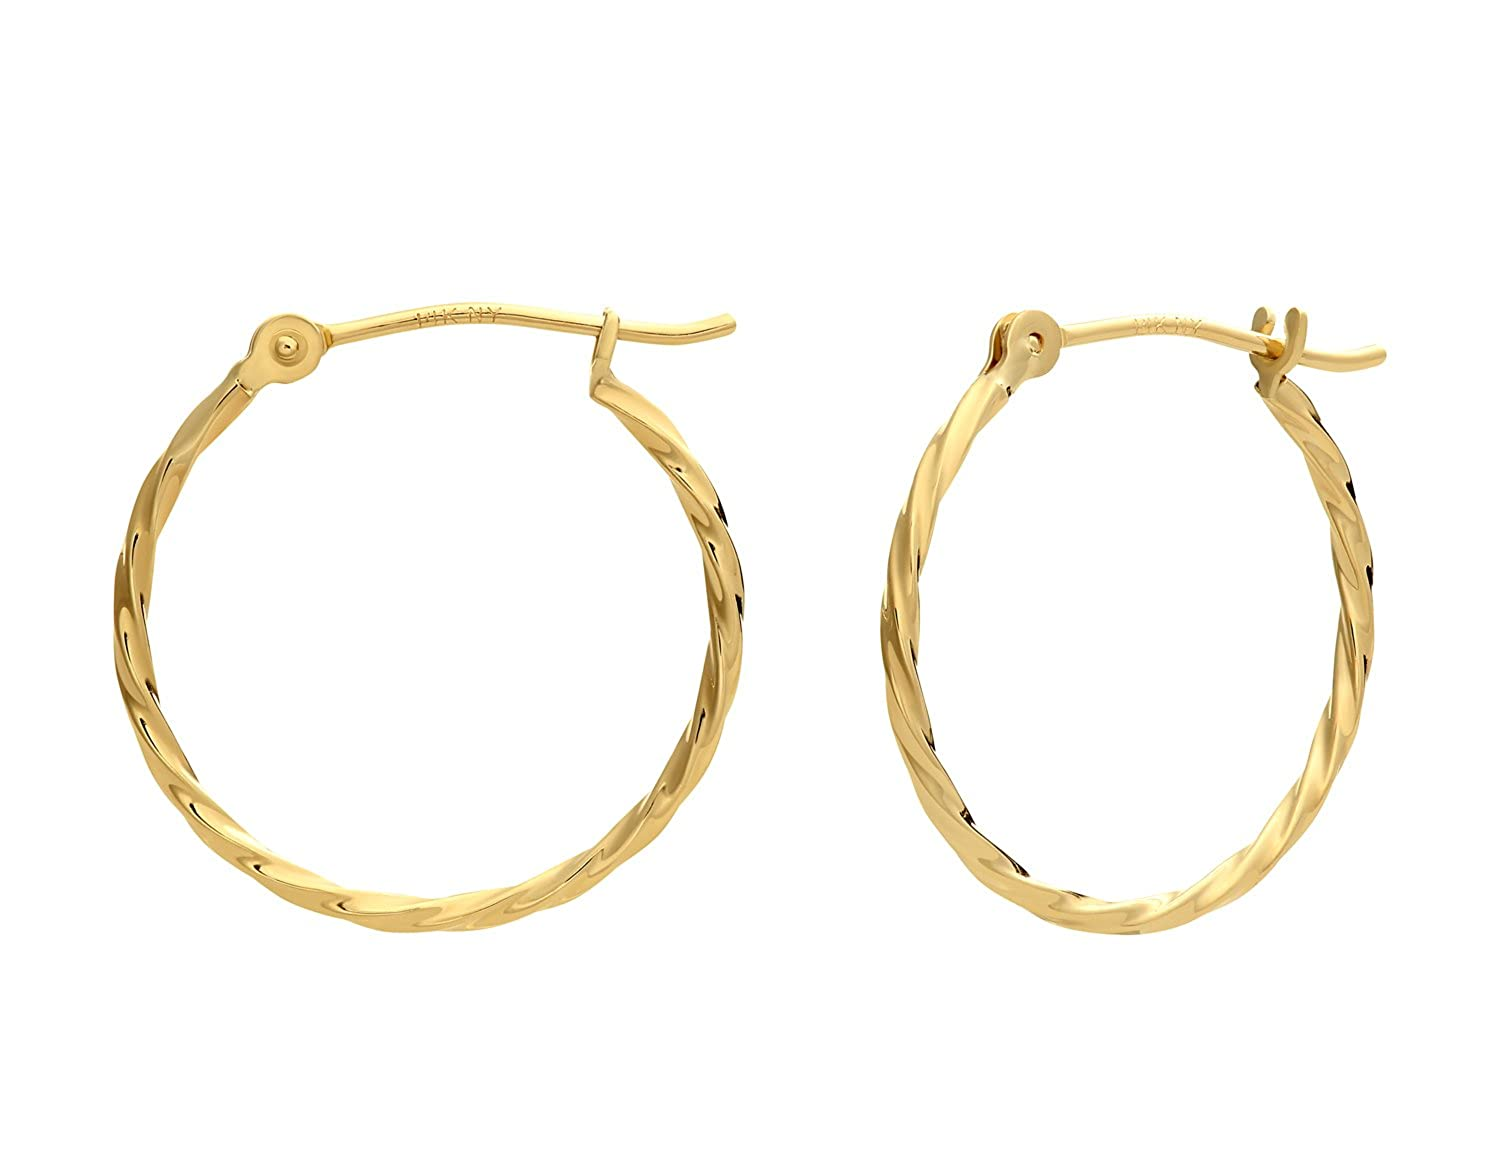 14k Yellow Gold Twisted Round Hoop Earrings NY Gold and Silver Inc RJ14KY-TW